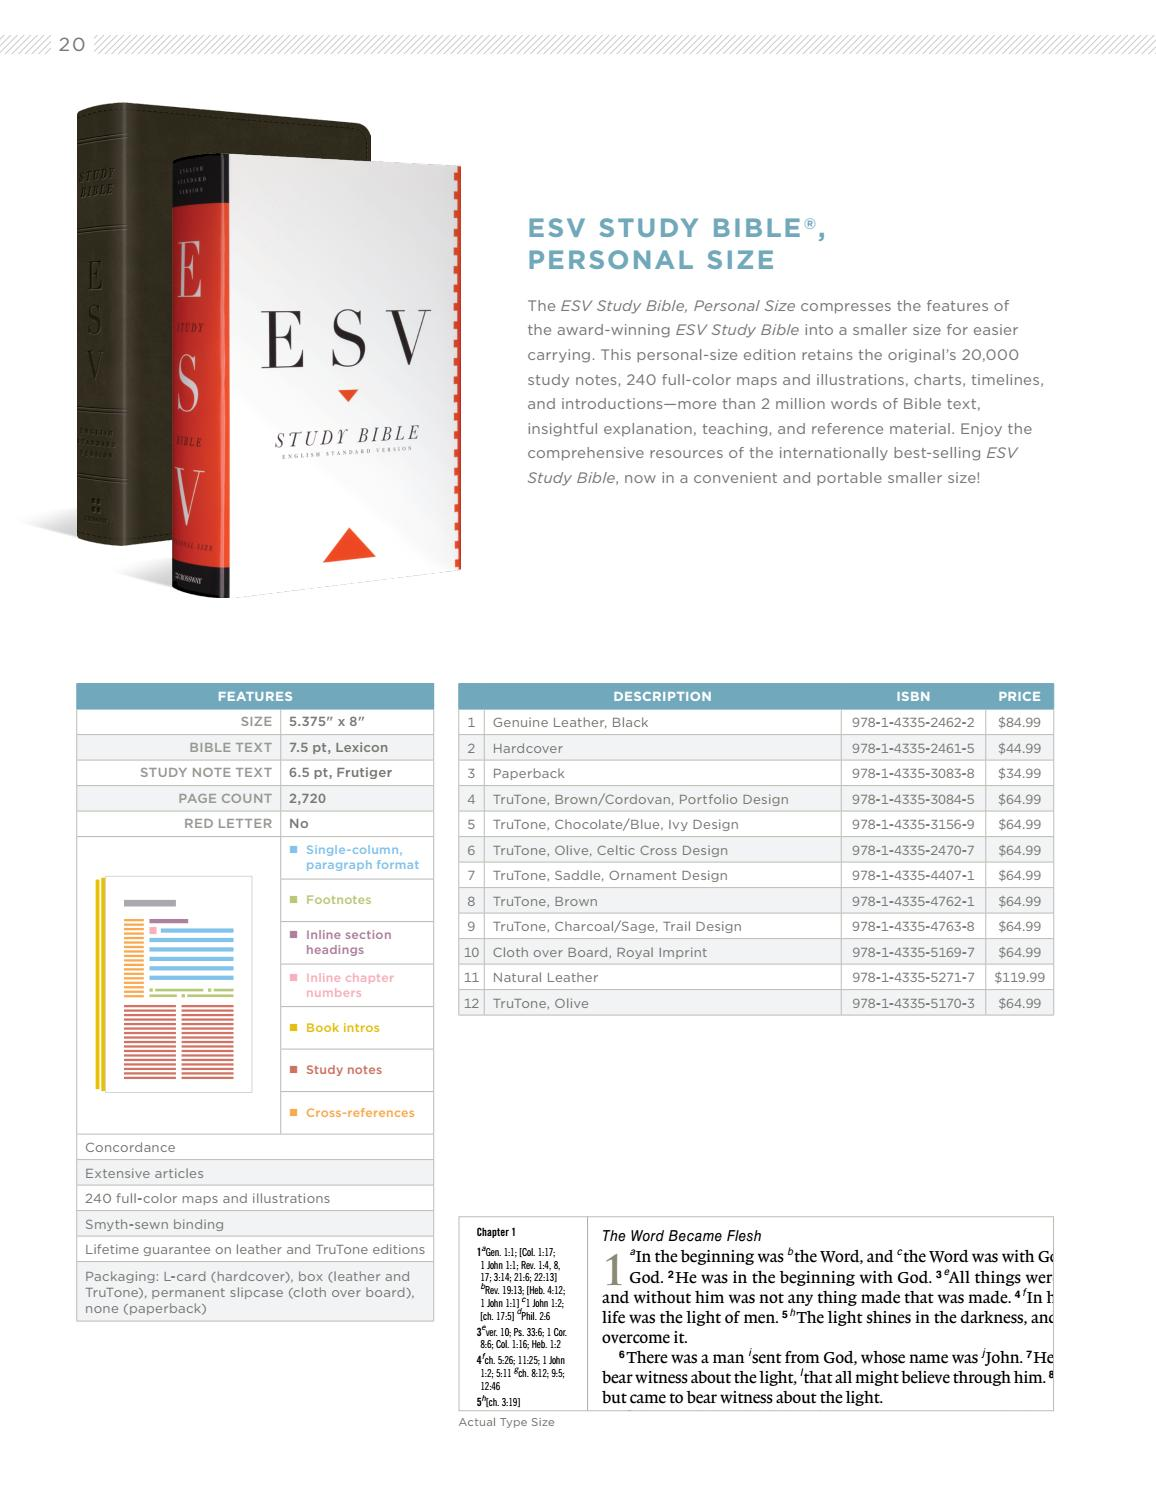 ESV Winter 2017 Bible Catalog by Crossway - issuu